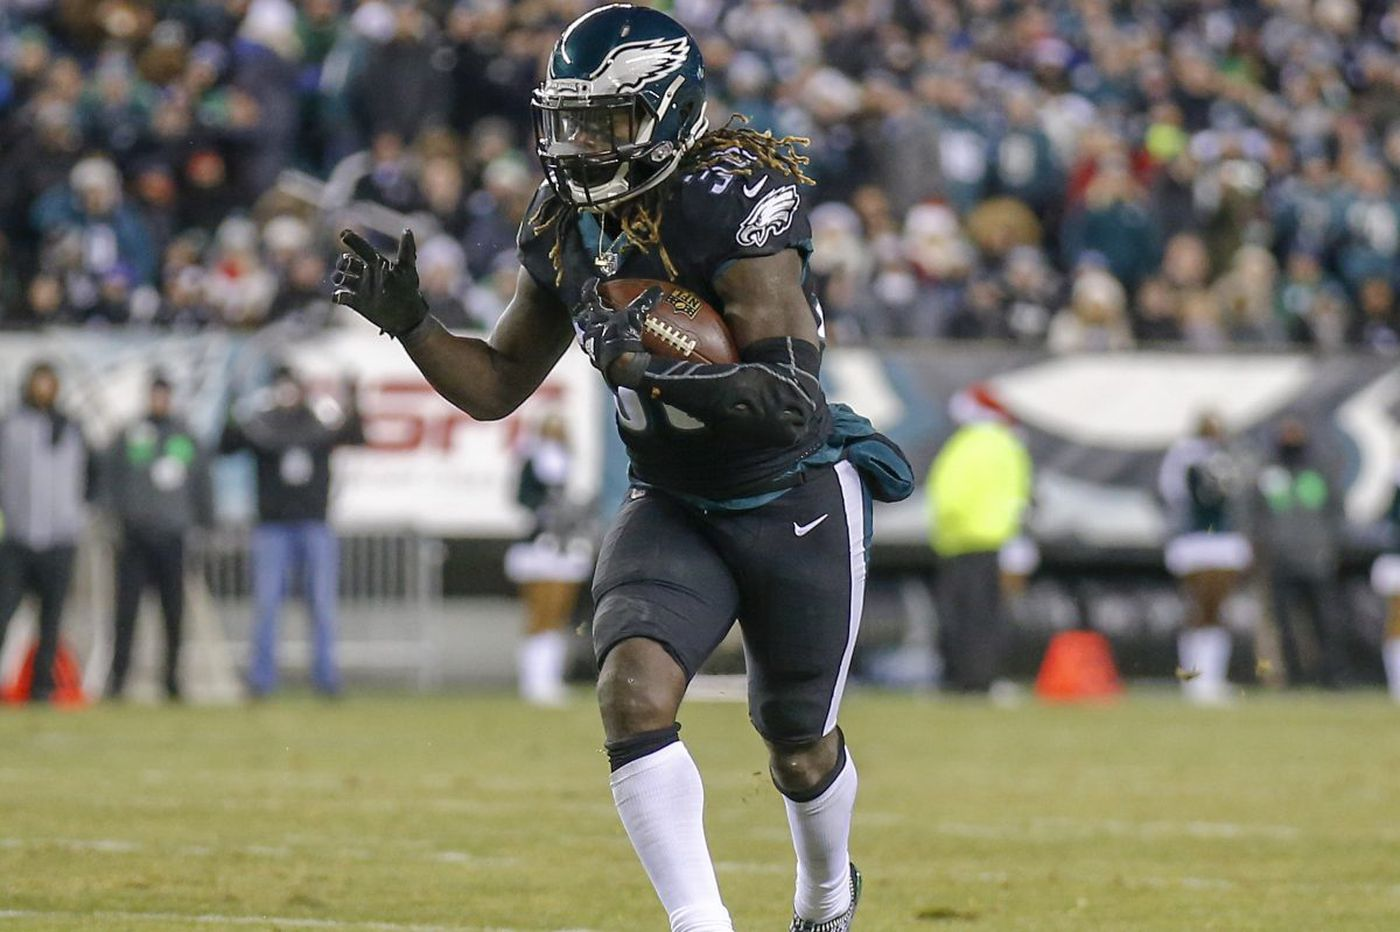 Eagles-Falcons scouting report   Paul Domowitch